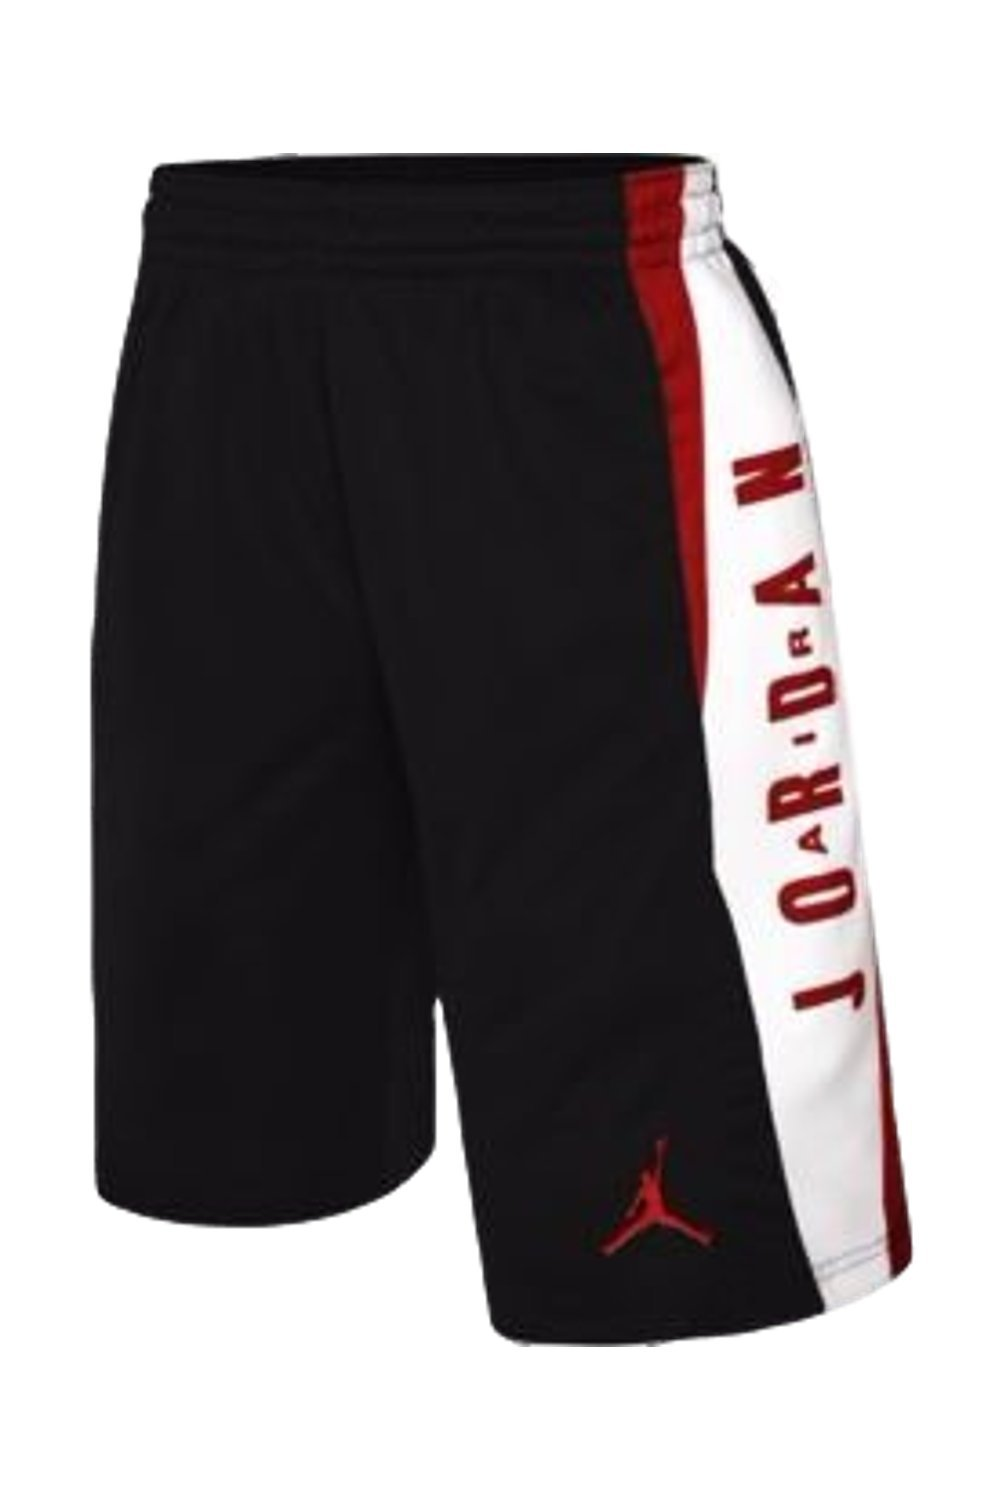 Jordan Boys Knit Takeover Shorts (Black, Large)